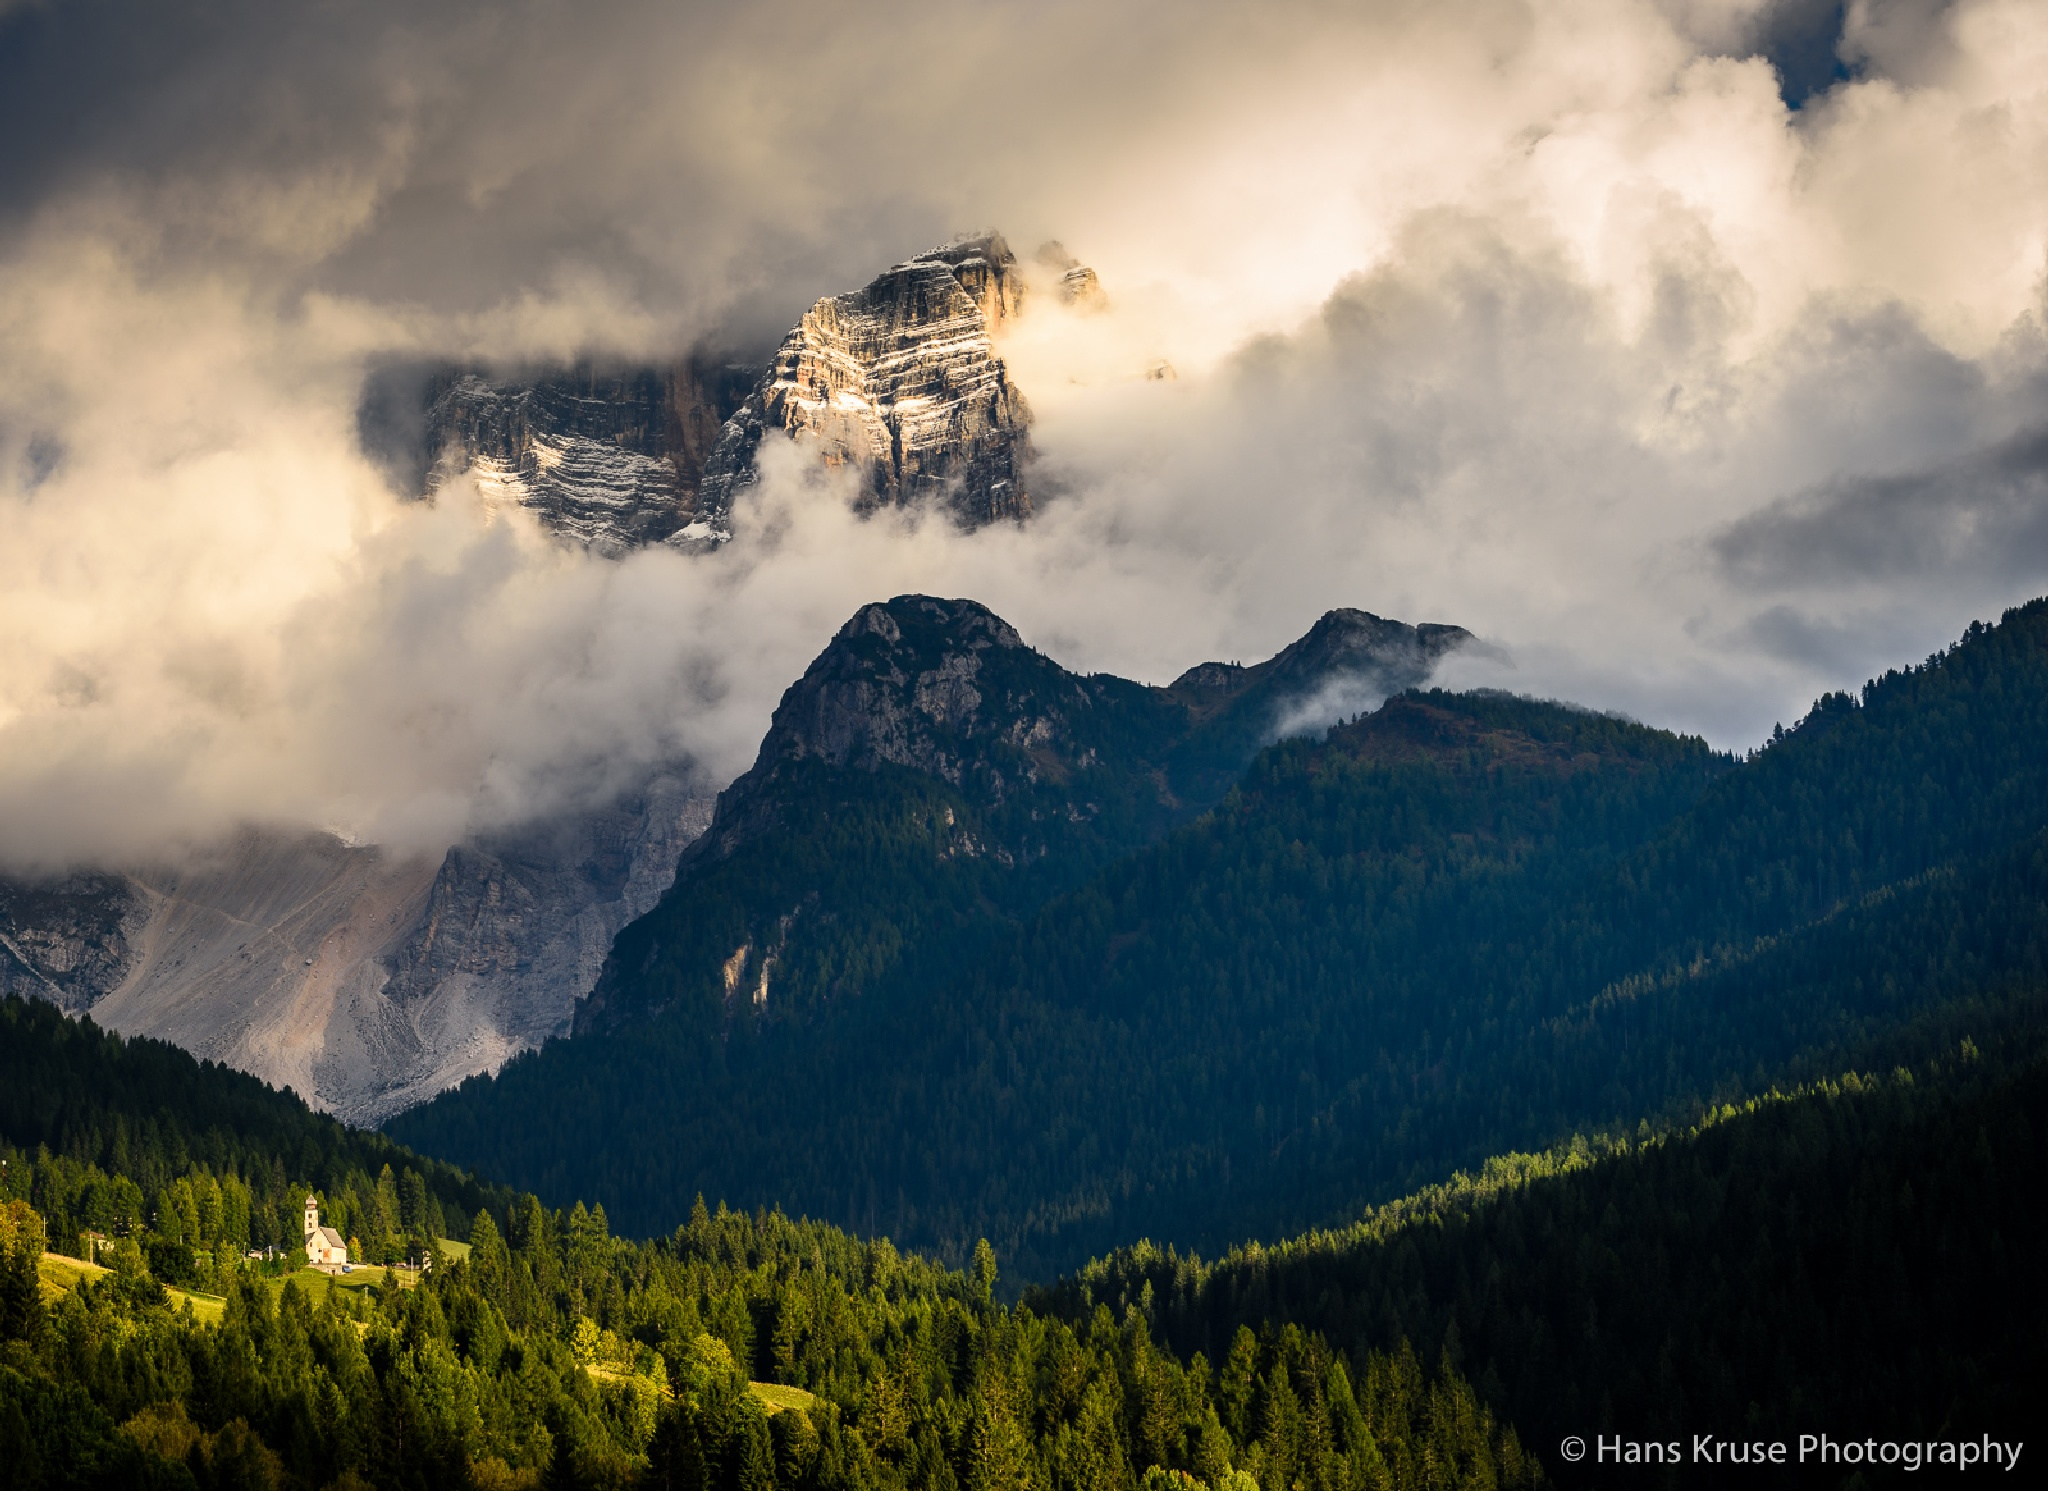 Monte Pelmo and the church by Hans Kruse